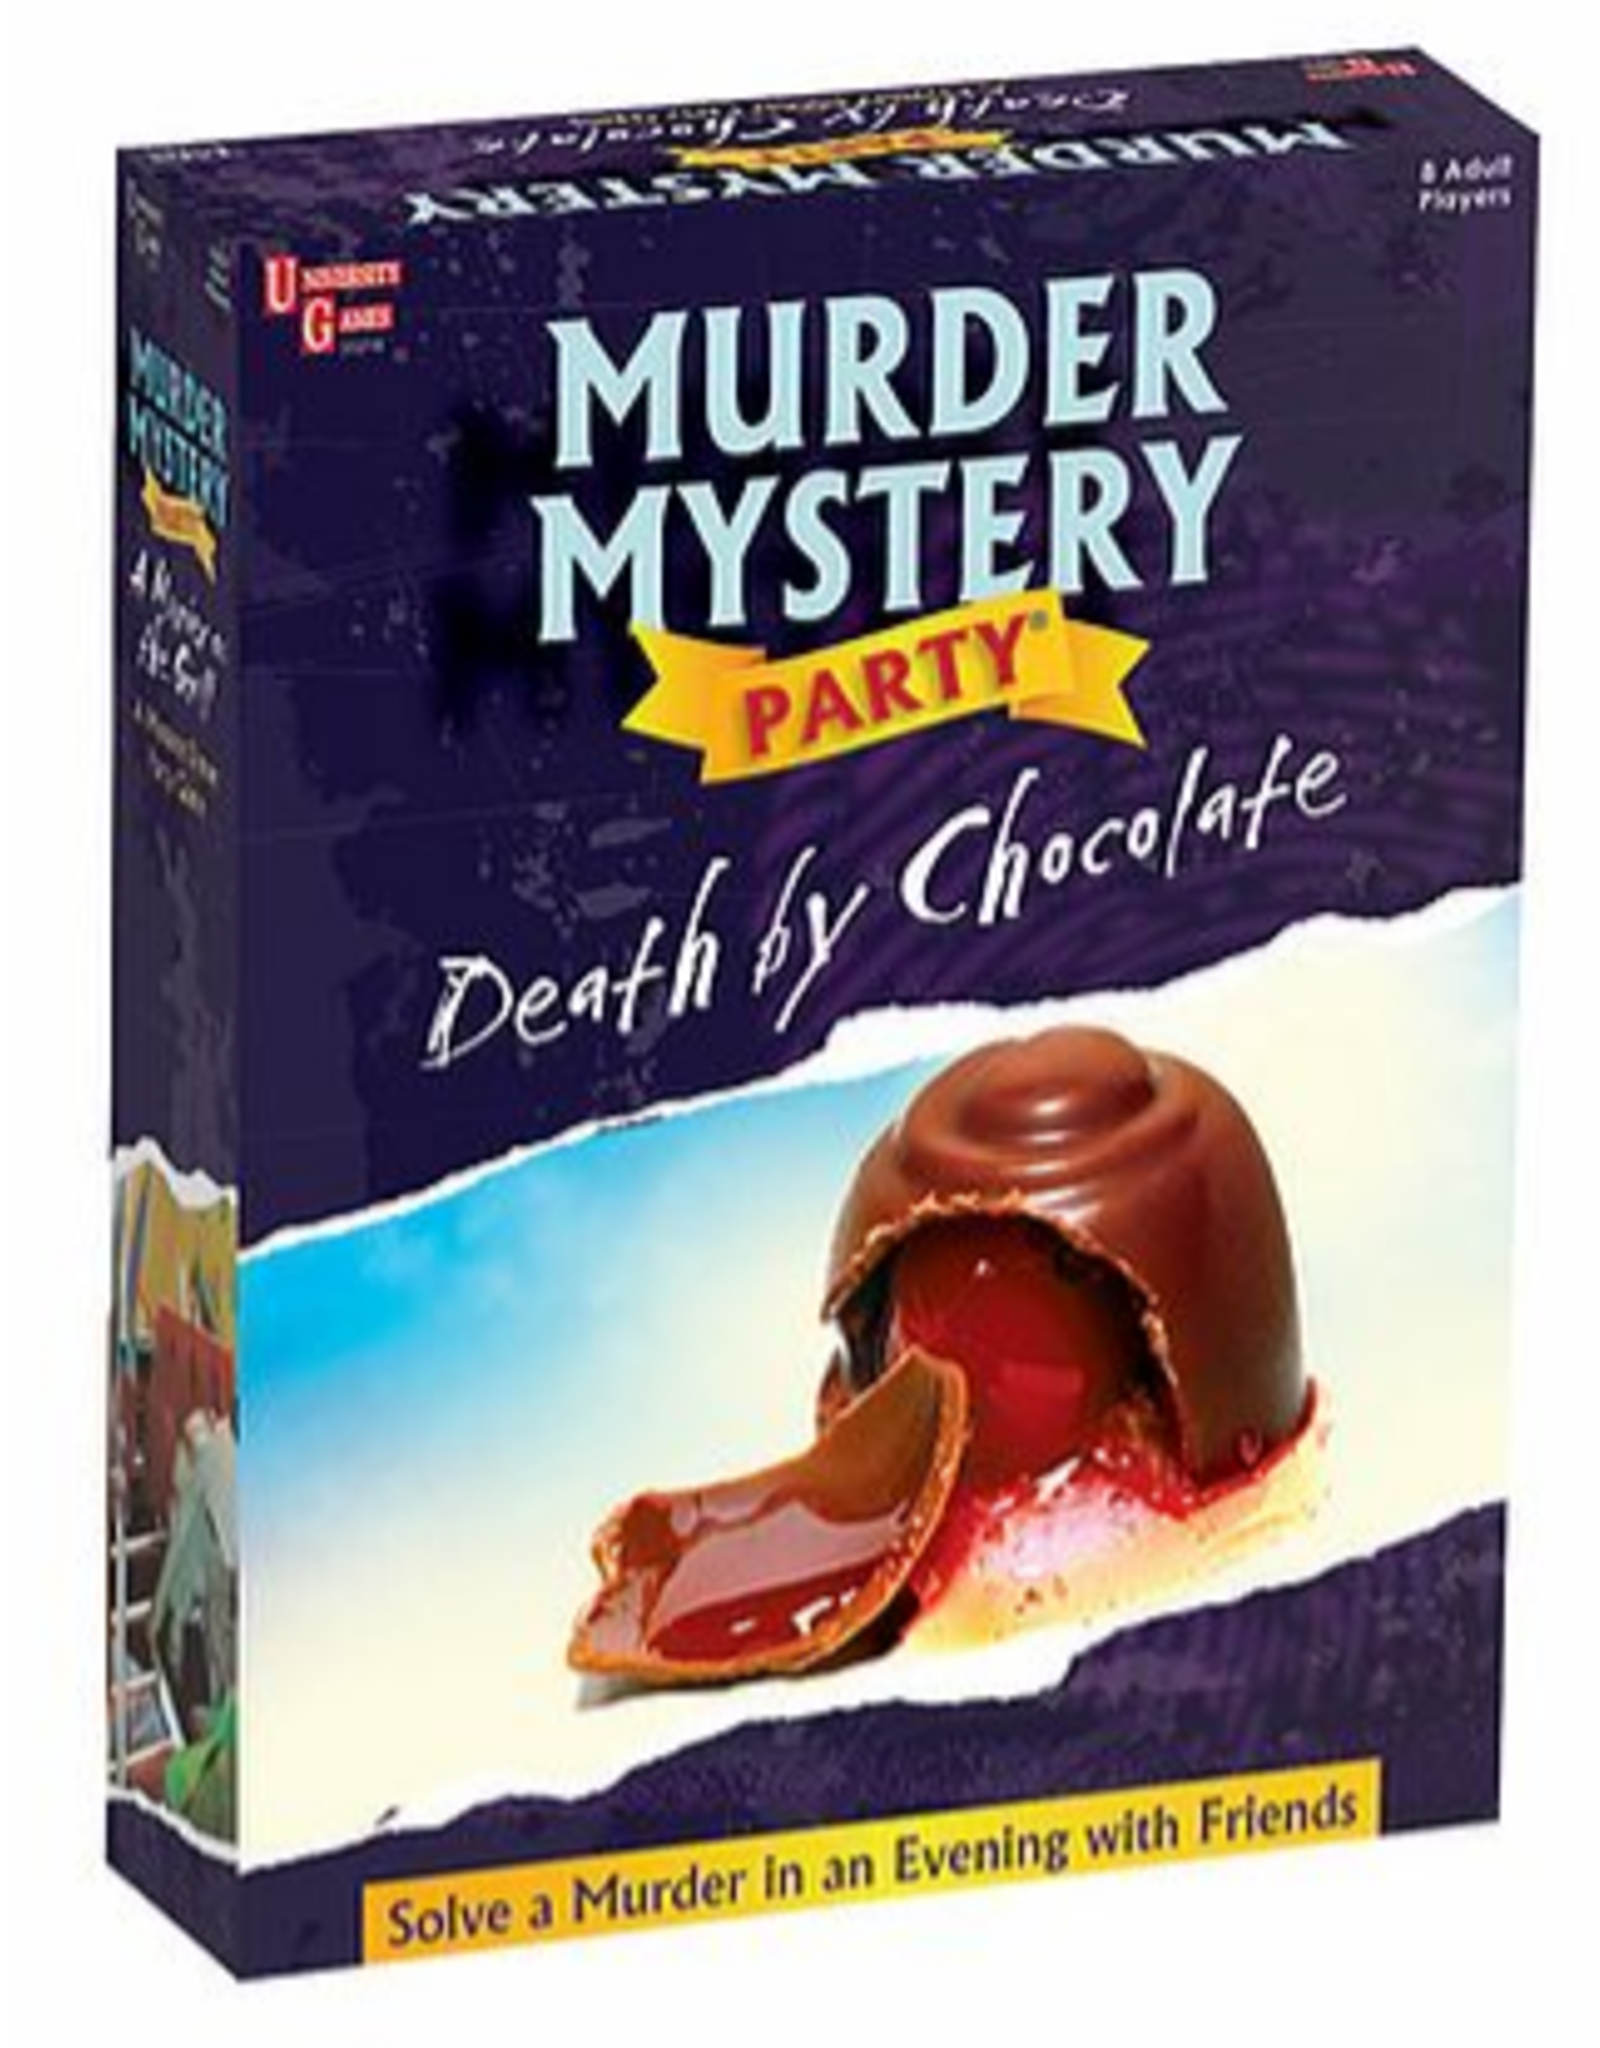 University Games Murder Mystery Party: Death by Chocolate